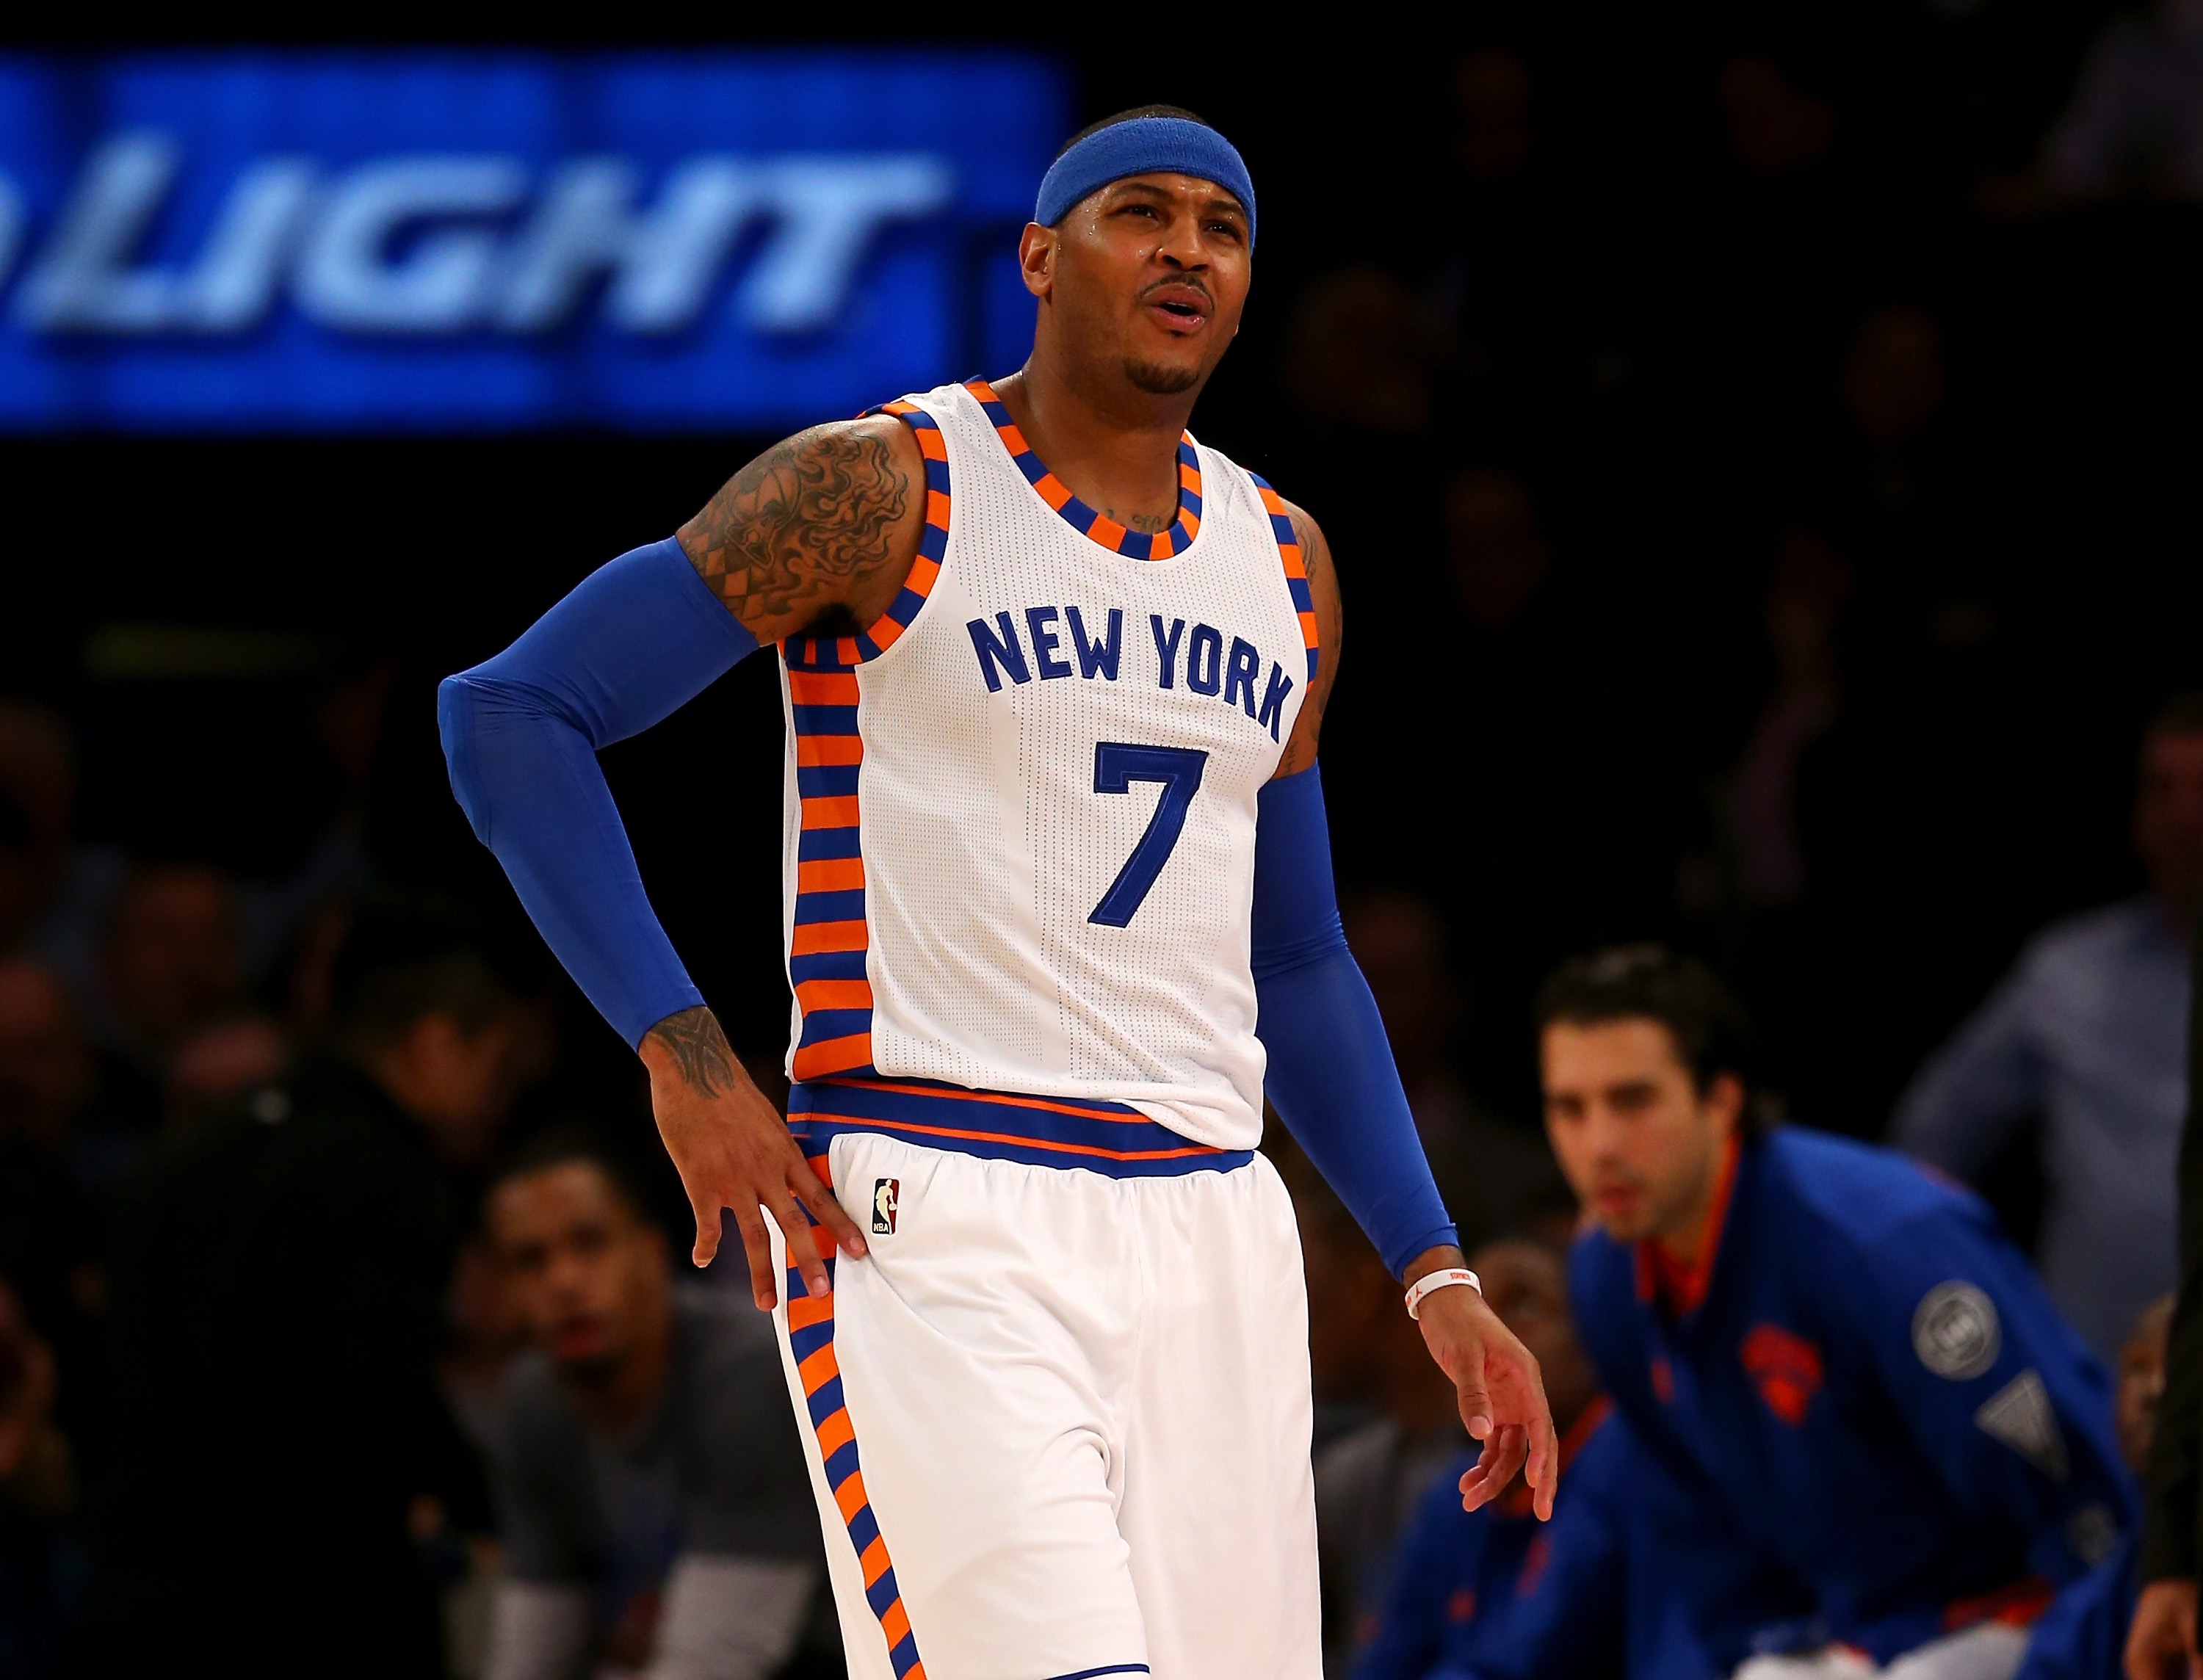 NEW YORK, NY - JANUARY 12:  Carmelo Anthony #7 of the New York Knicks reacts after he is called for a foul in the first half against the Boston Celtics at Madison Square Garden on January 12, 2016 in New York City. (Photo by Elsa/Getty Images)